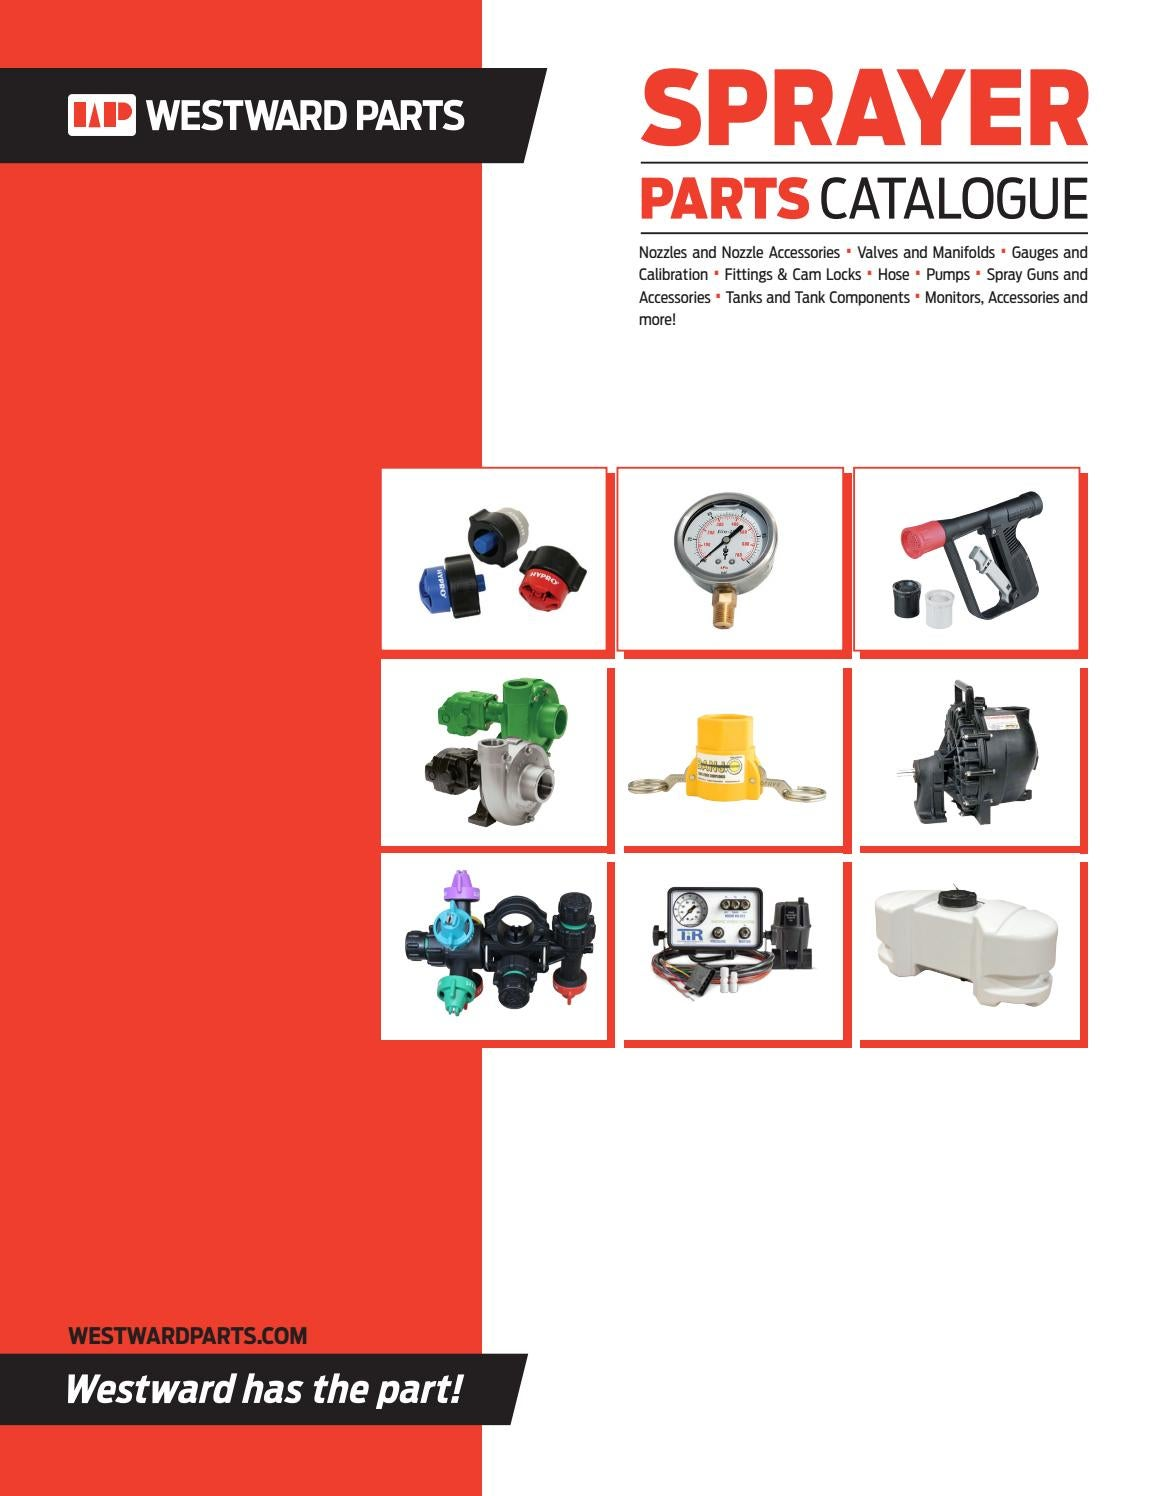 hight resolution of section 1 nozzles and nozzle accessories hd westward parts sprayer parts catalogue by westwardparts issuu